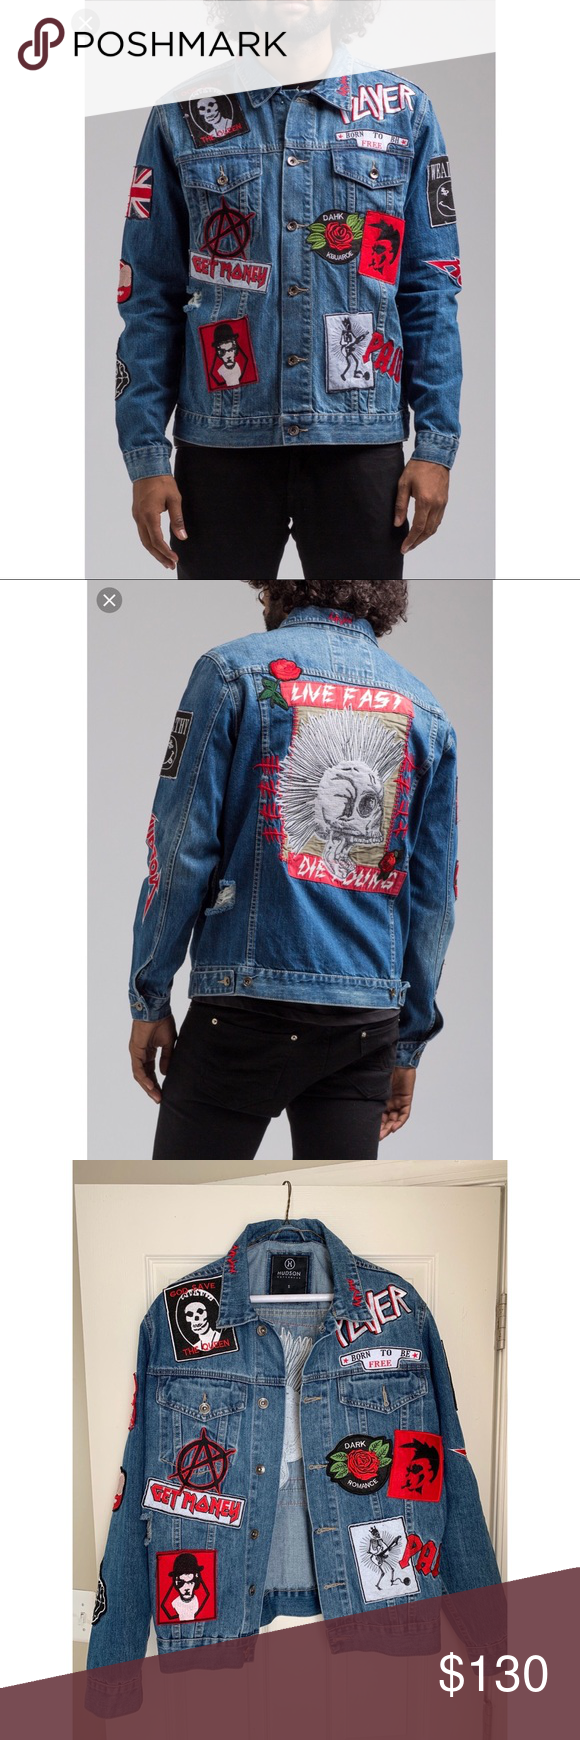 Hudson Outerwear Live Fast Die Young Denim Jacket 100 Cotton Ny Streetwear Brand Rare Out Of Stock Online Brand New Denim Jacket Jackets Outerwear Jackets [ 1740 x 580 Pixel ]